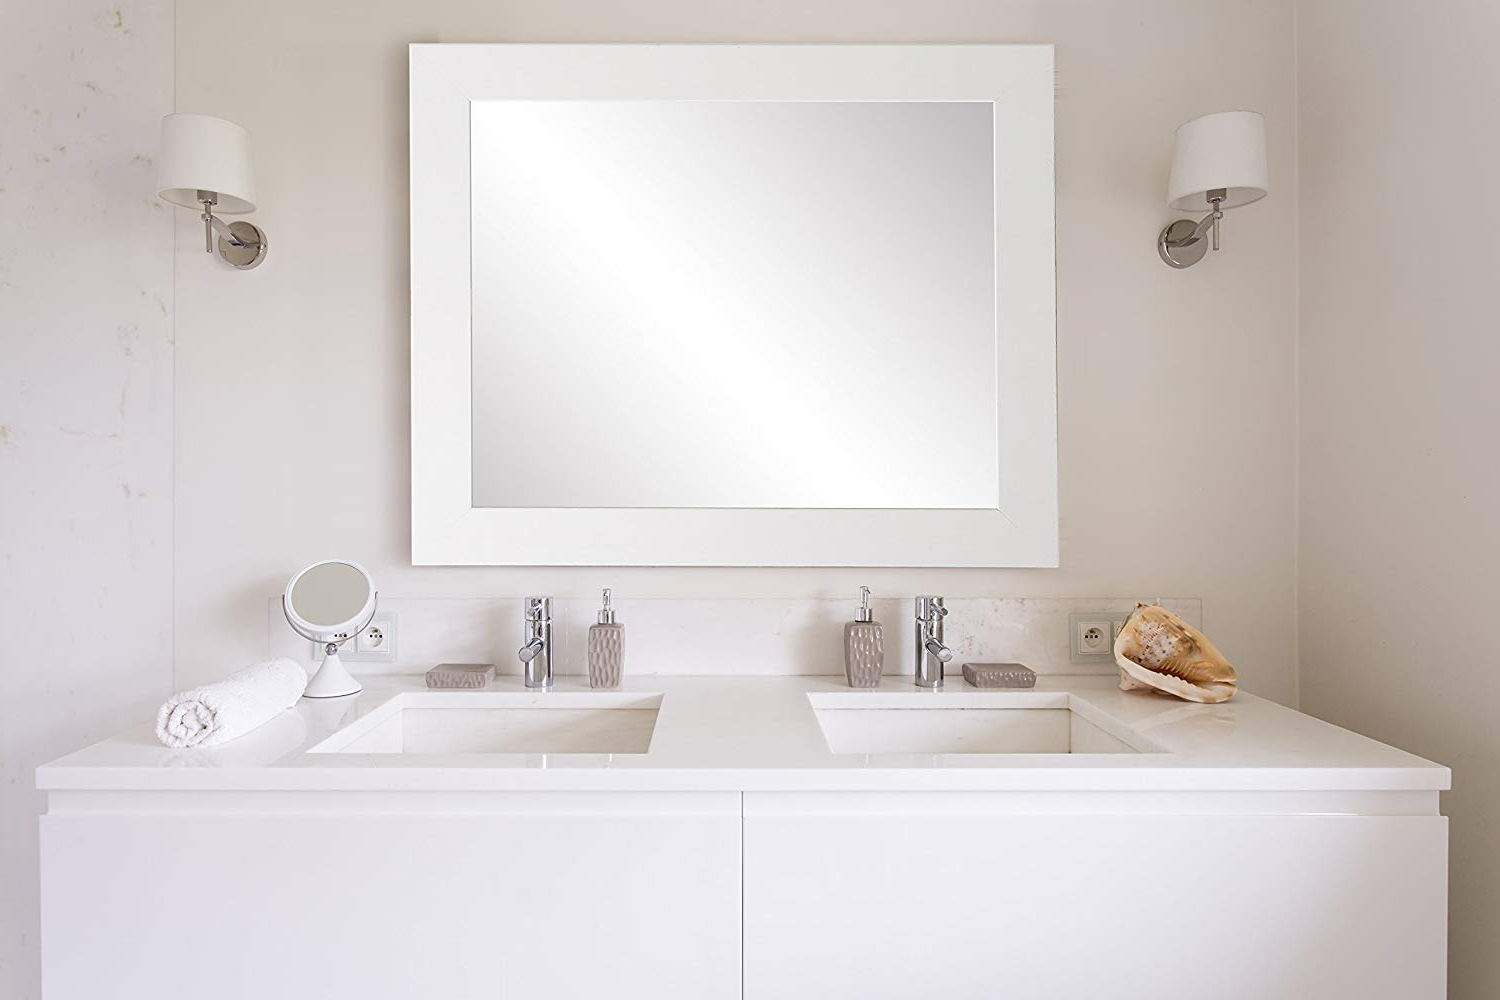 "Large White Wall Mirrors For Best And Newest Brandtworks 32"" X 38"" Wall Mirror, Large, White (Gallery 7 of 20)"